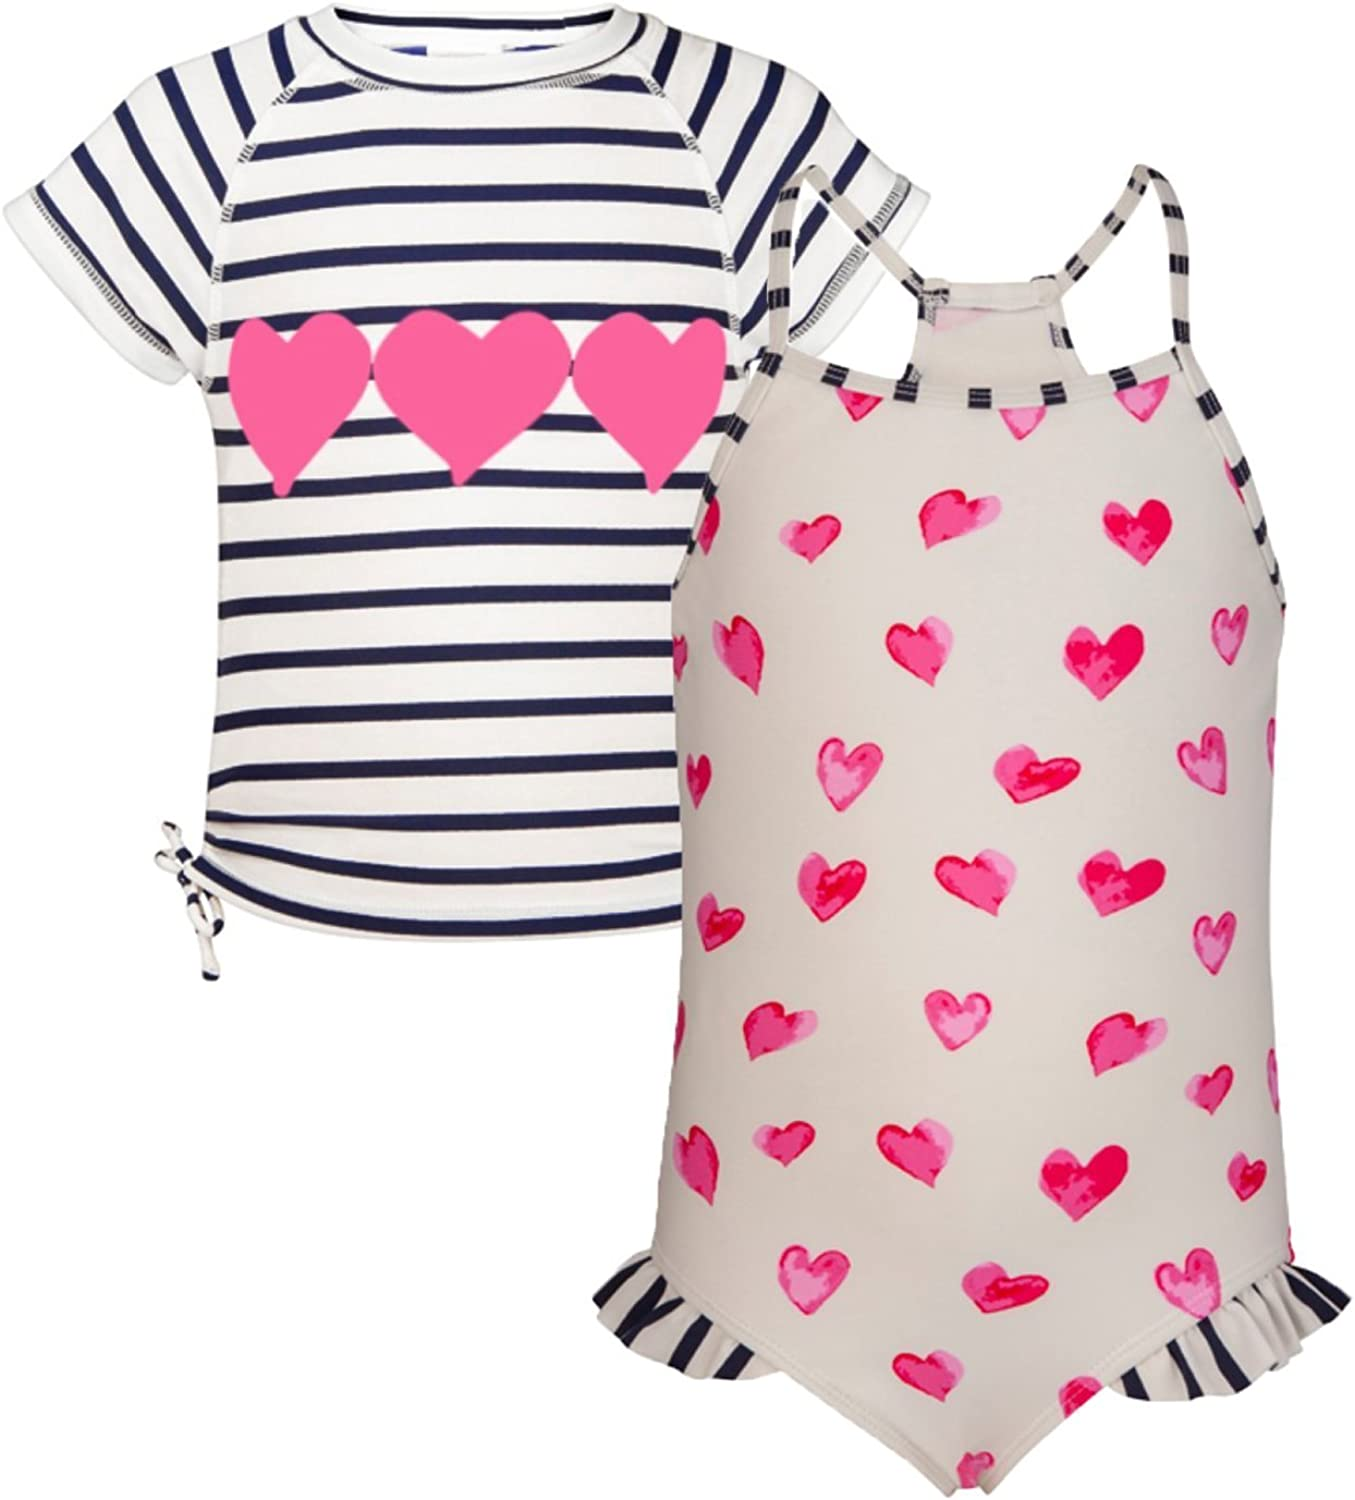 Snapper Rock Hearts 2 PC Swimsuit and Short Sleeve Rash Top Set